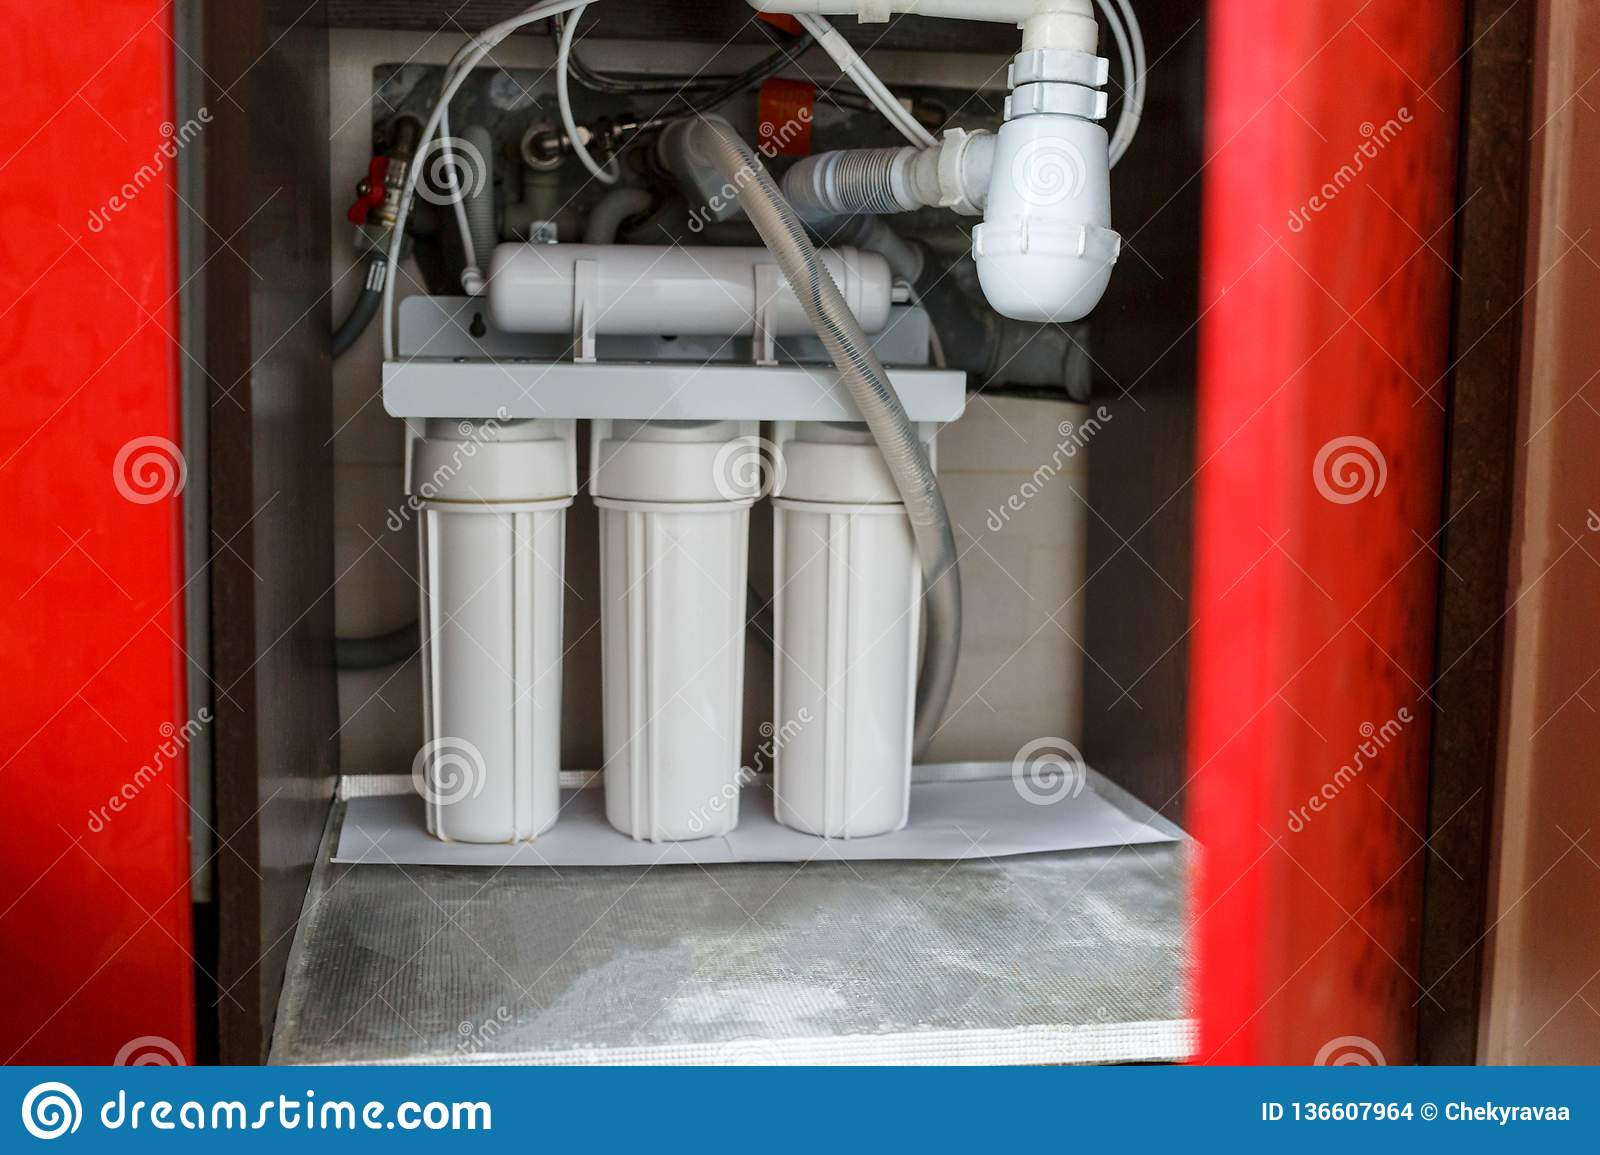 Reverse Osmosis Water Purification System At Home